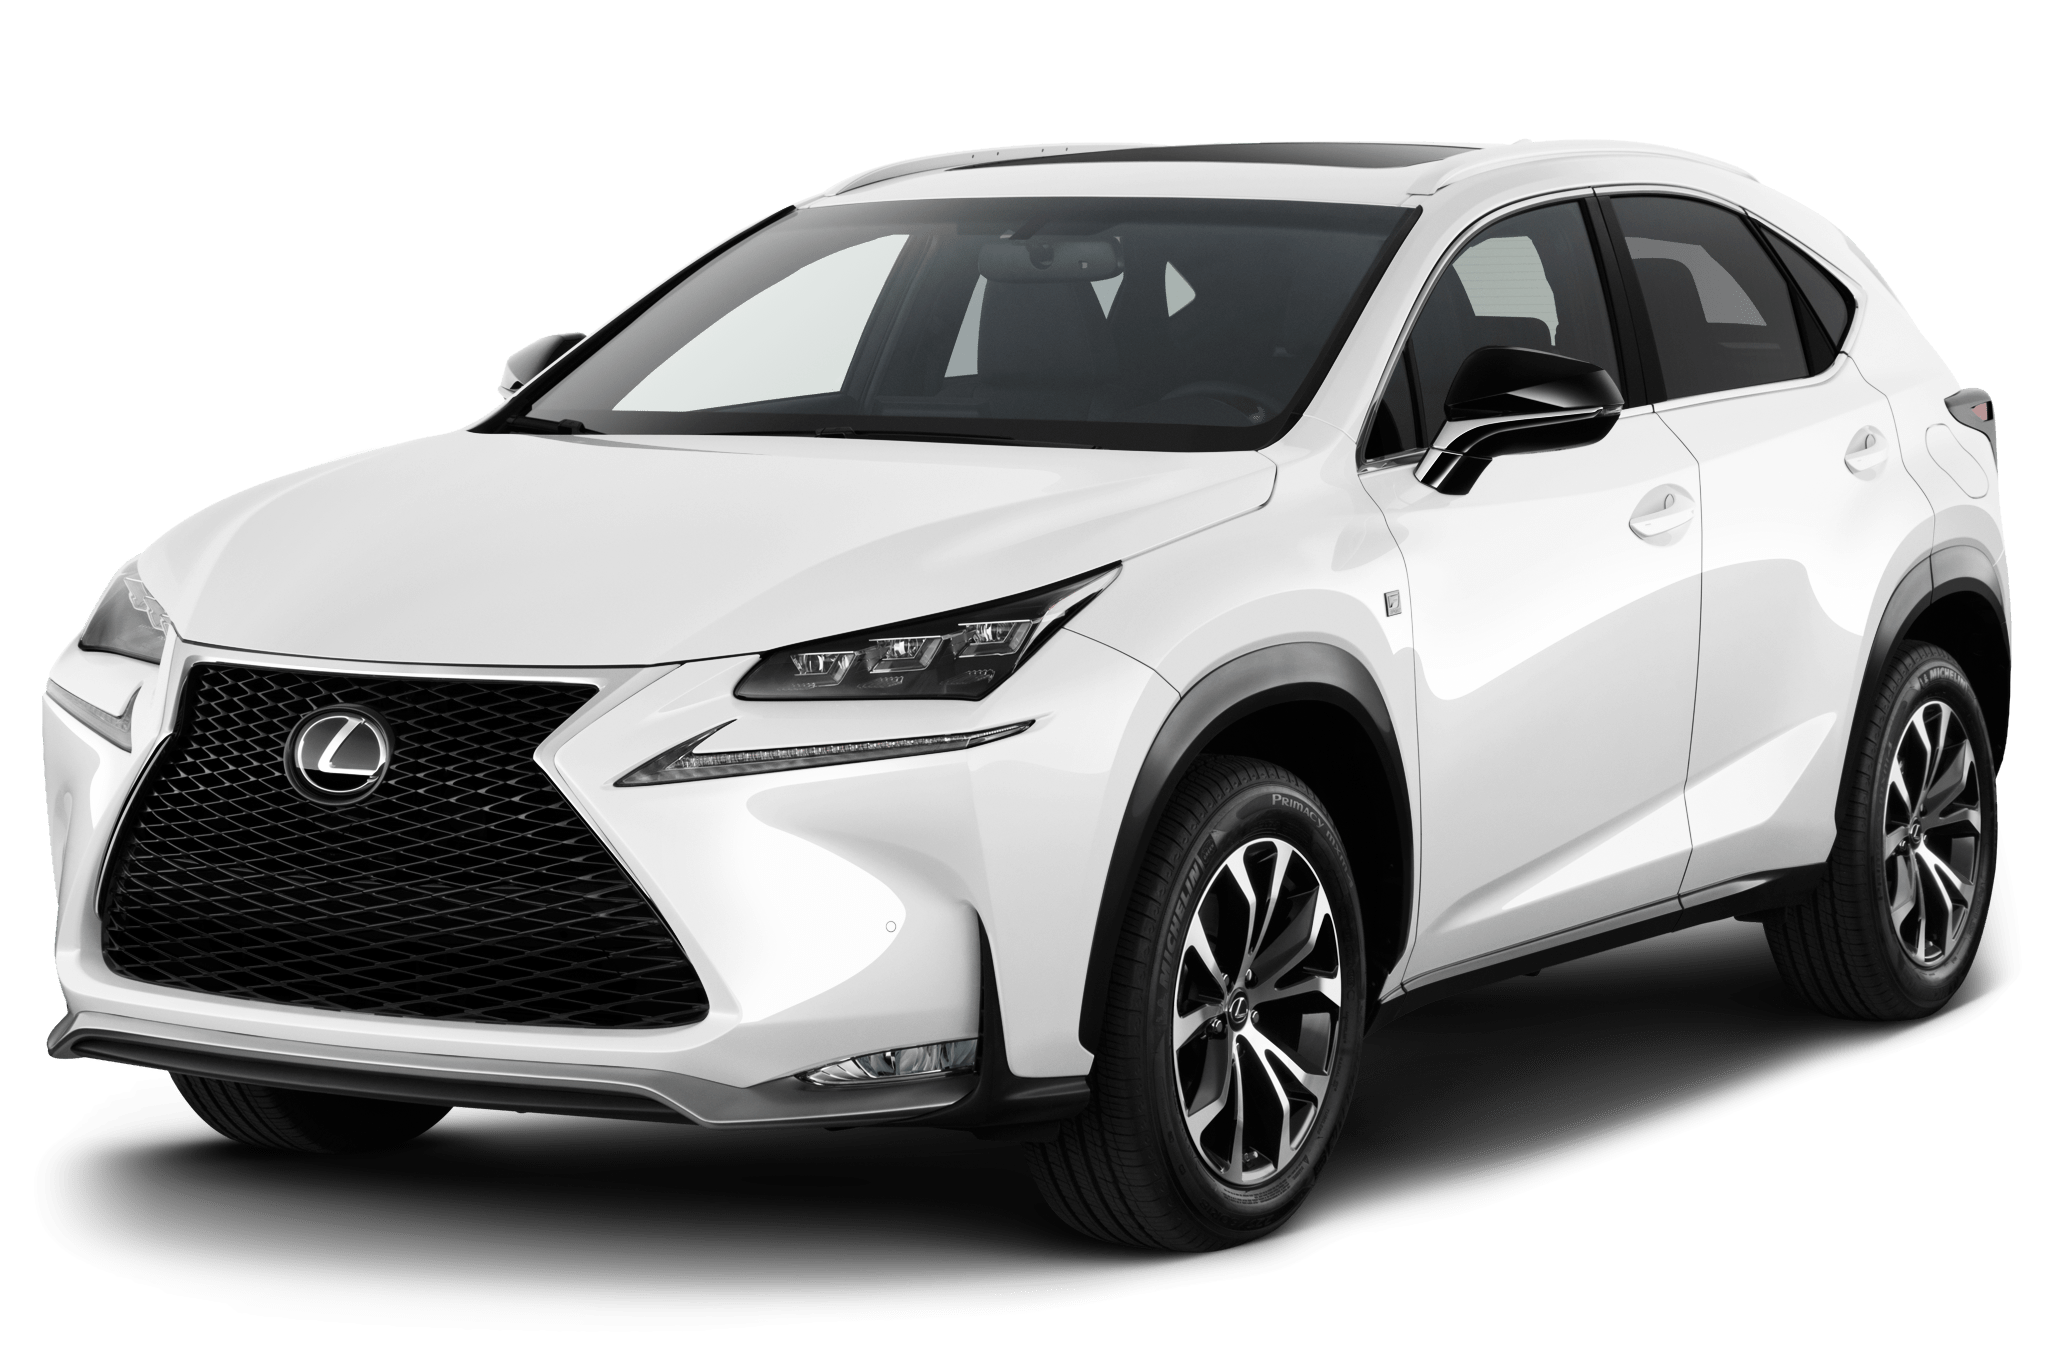 Lexus Will Debut Level 4 Self Driving Tech in 2020s